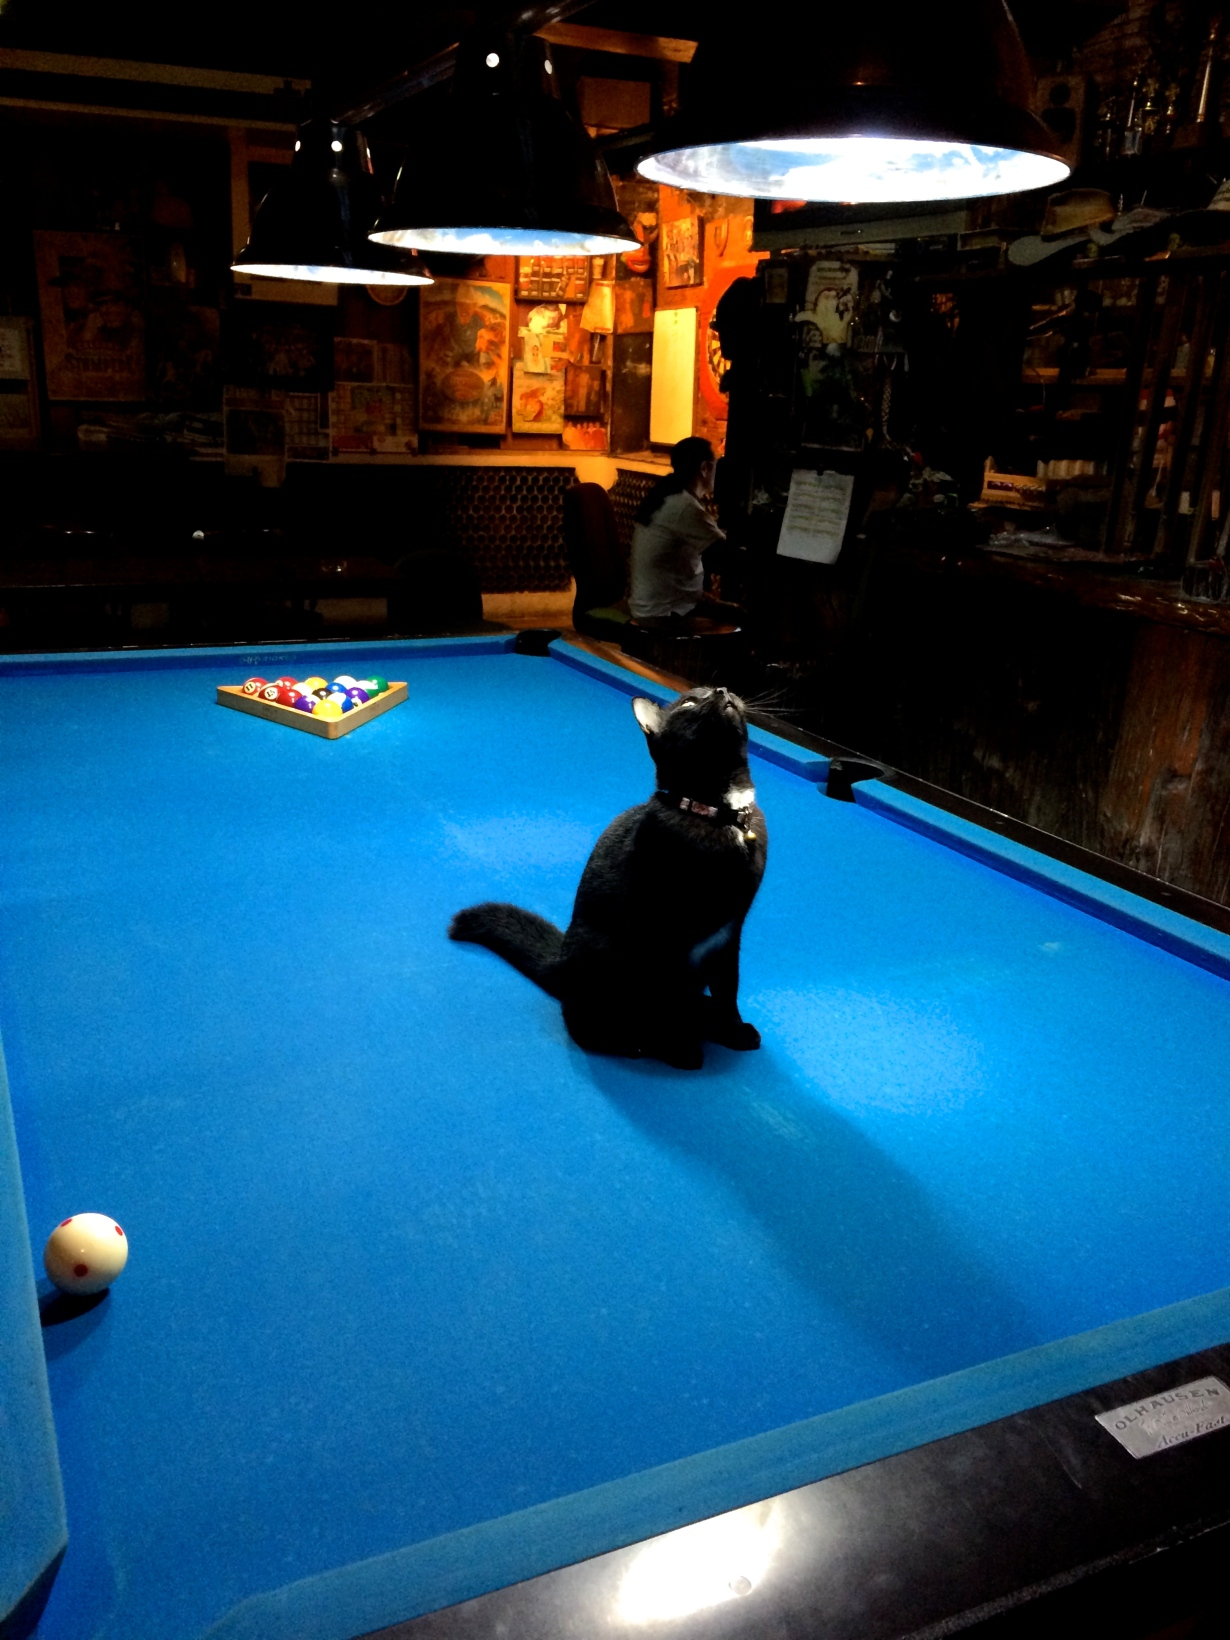 That's a cat on a pool table!